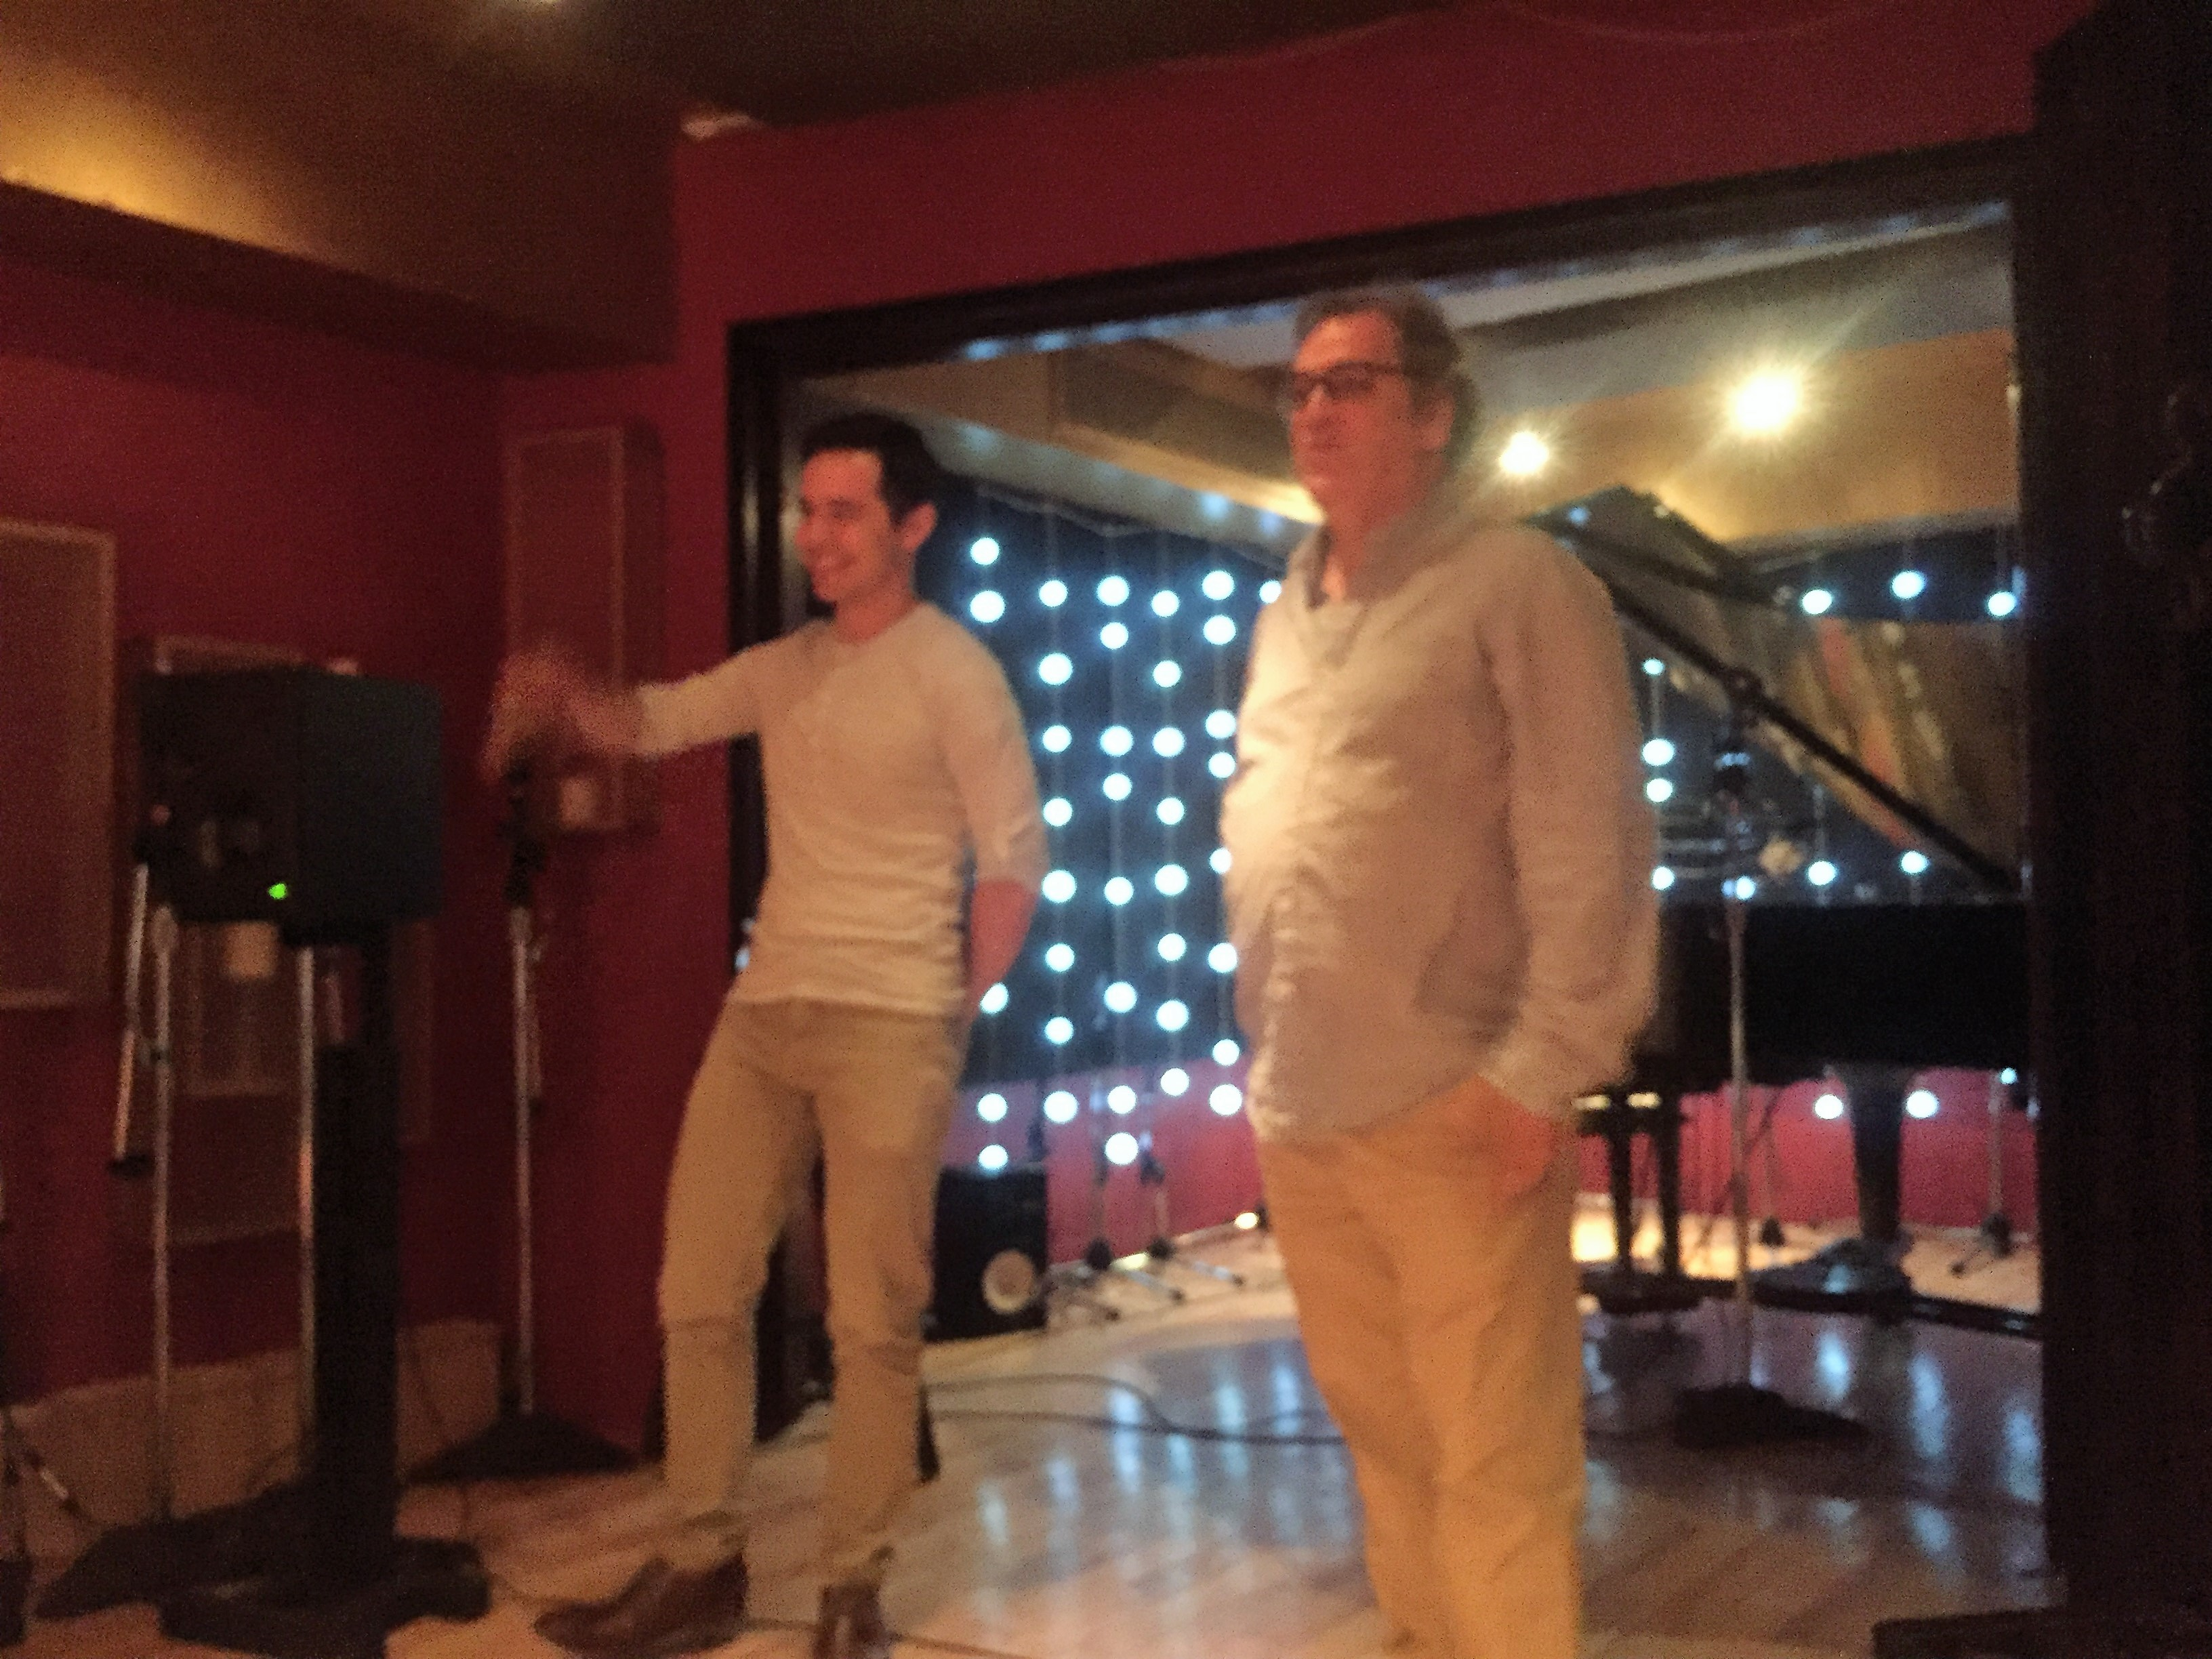 Vince Degriogio introducing David Archuleta at the CymbaMusic Hosted Listening Party Aug 2017